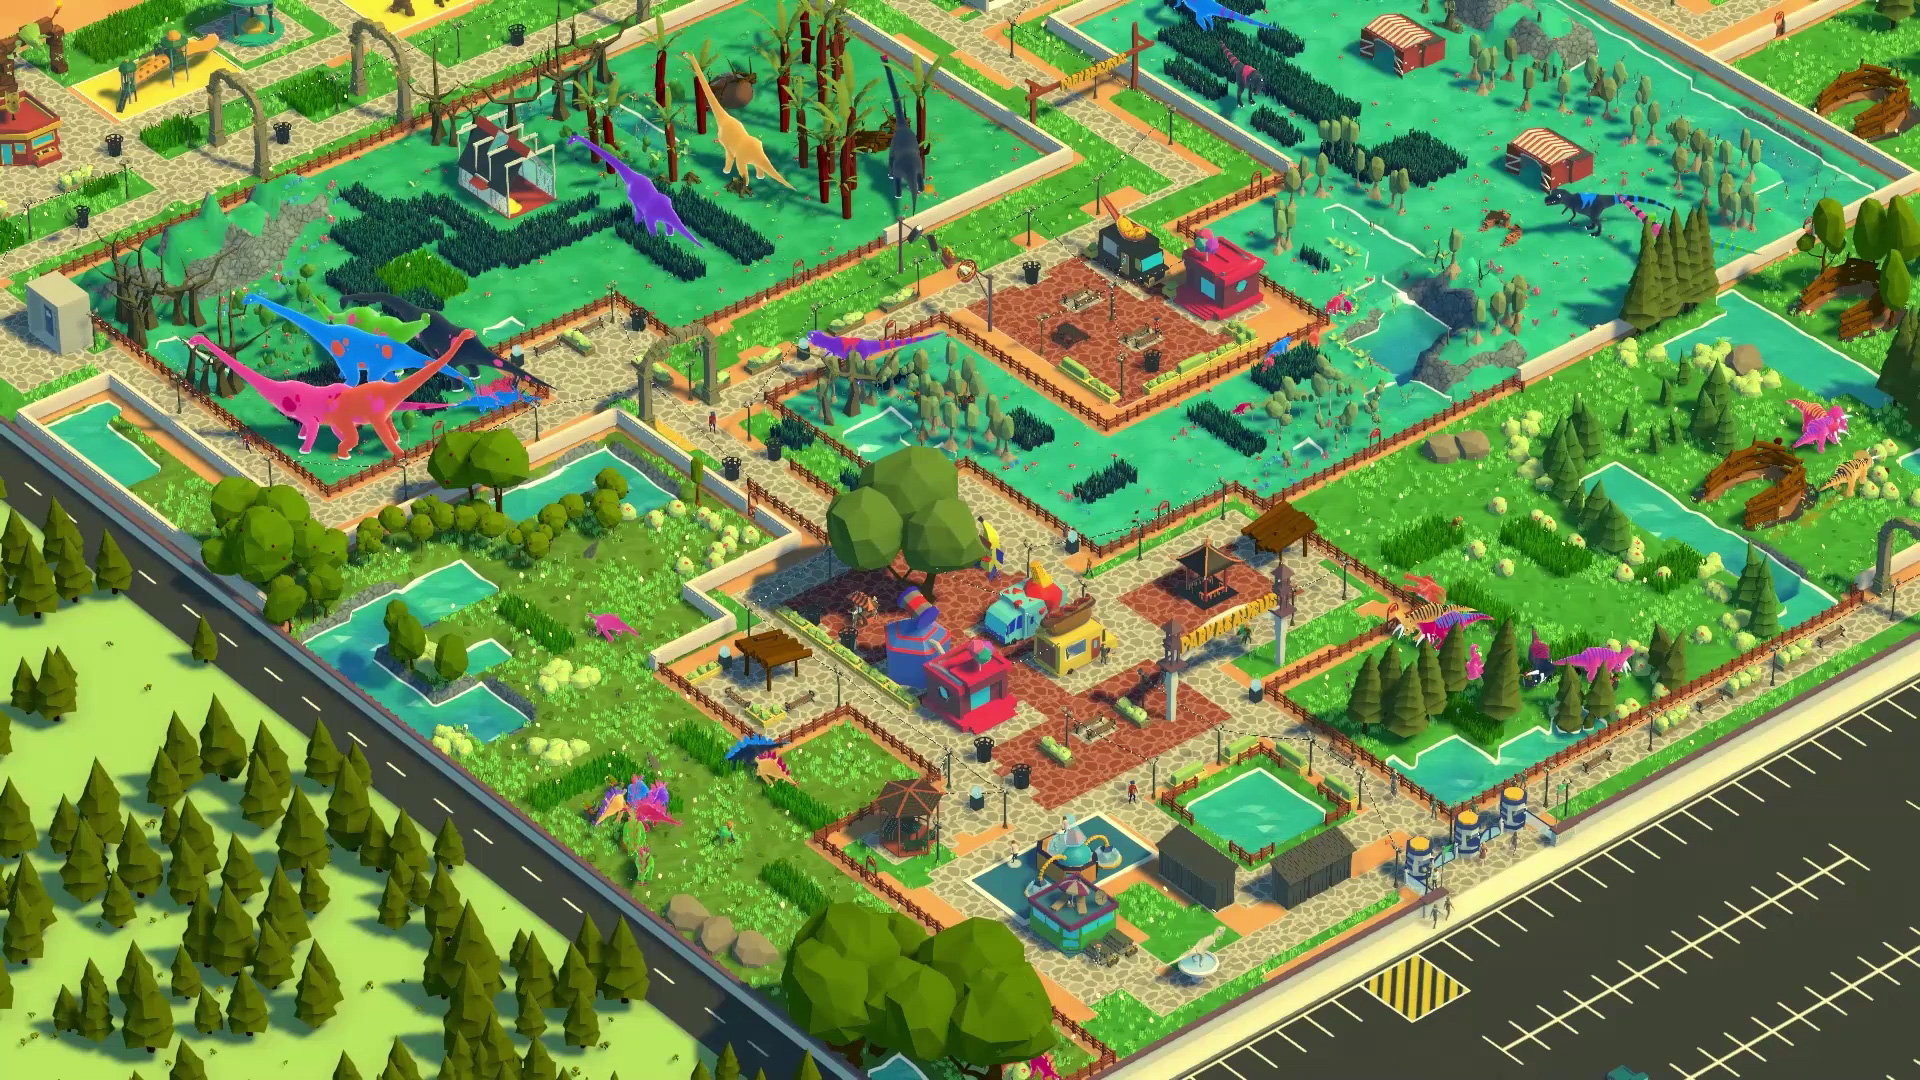 An overview screenshot of Parkasaurus